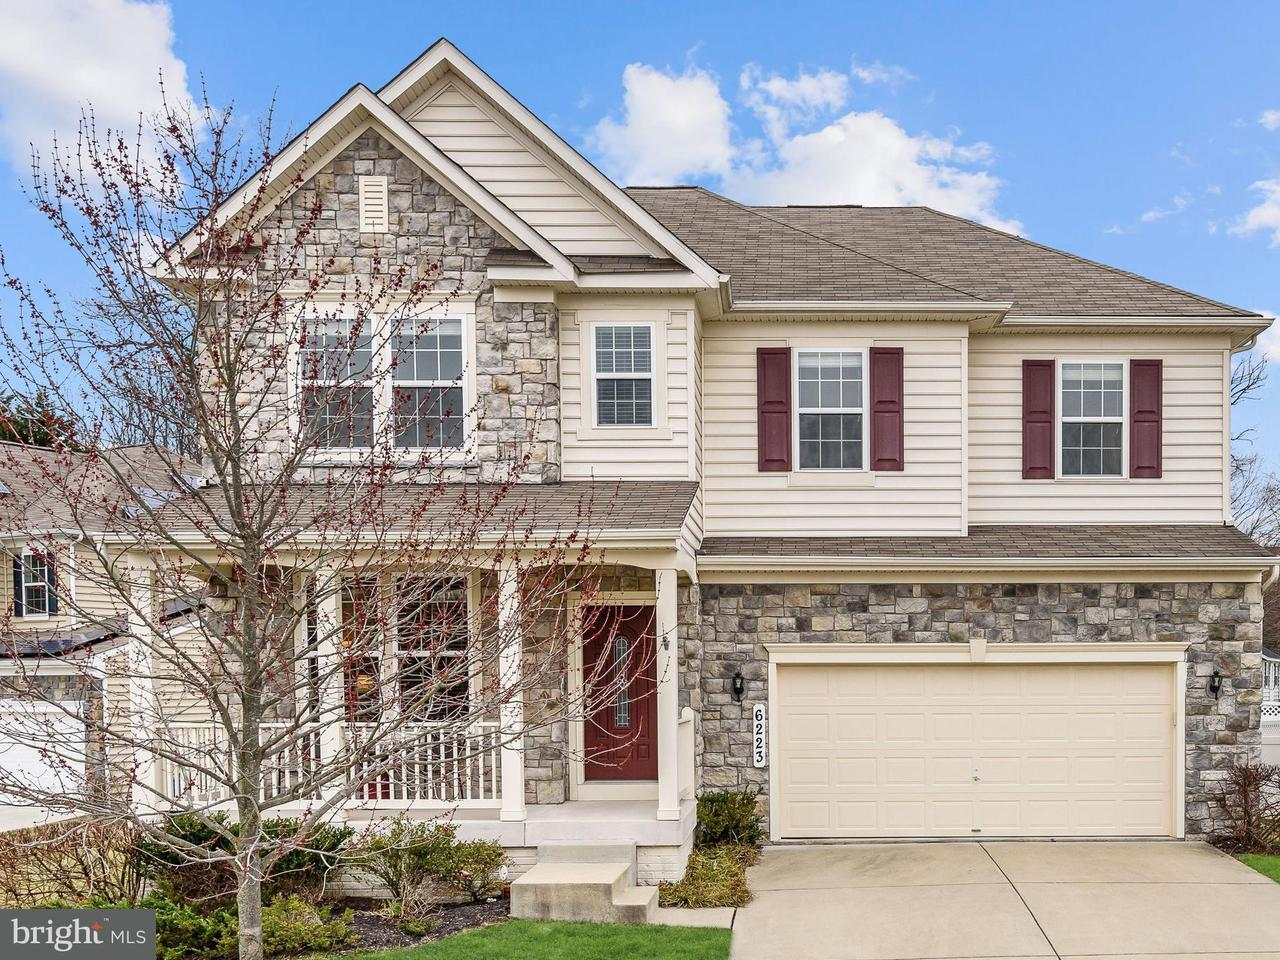 Single Family Home for Sale at 6223 Summer Haven Lane 6223 Summer Haven Lane Hanover, Maryland 21076 United States